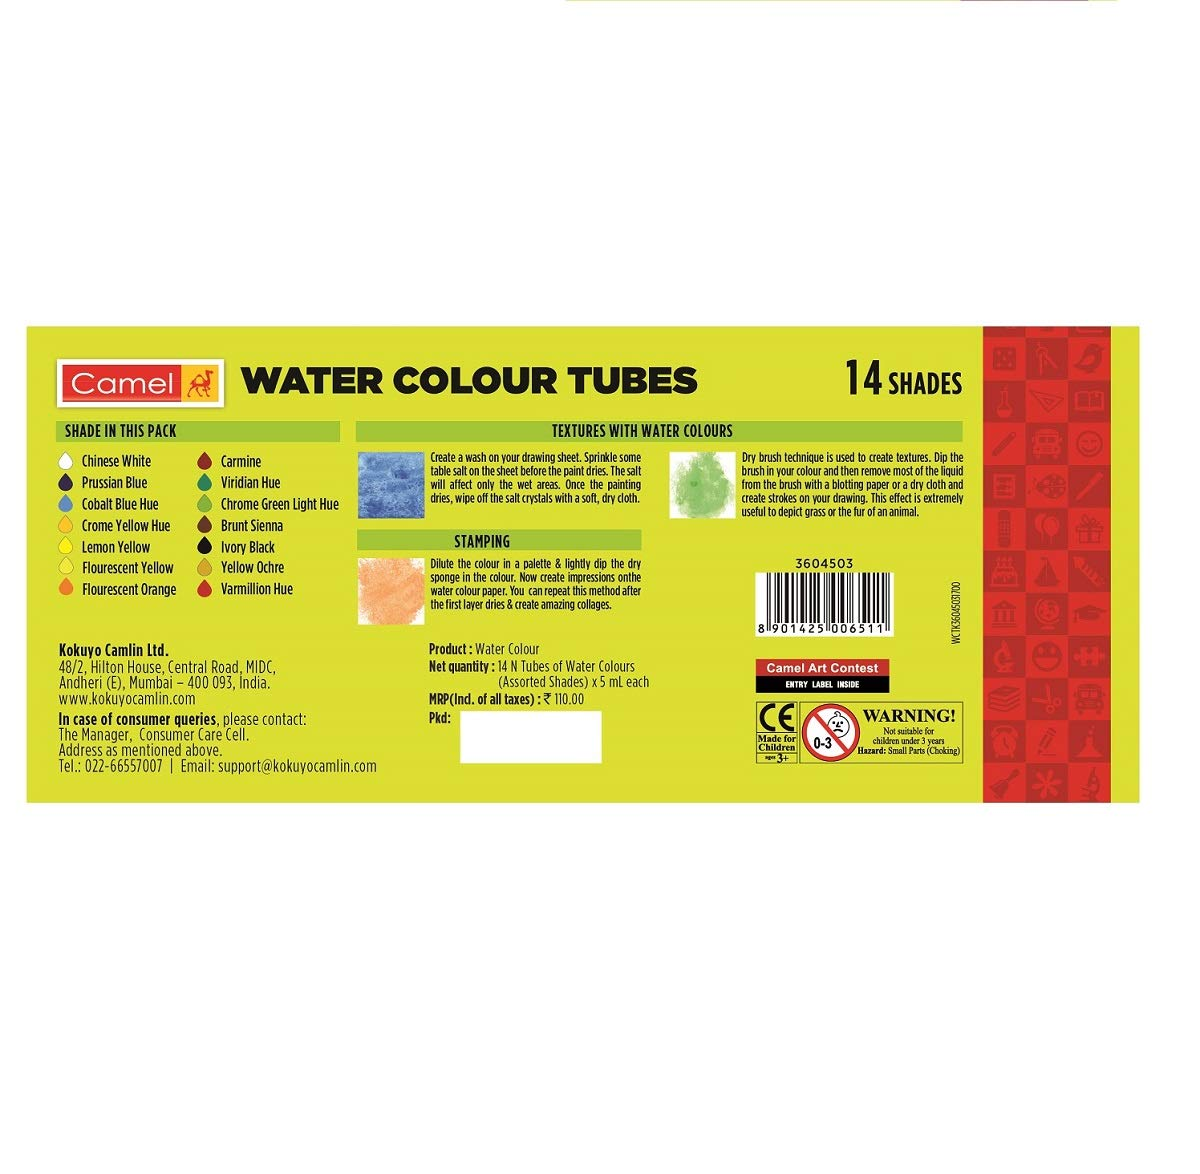 Camel Student Water Color Tube - 5ml, 14 Shades